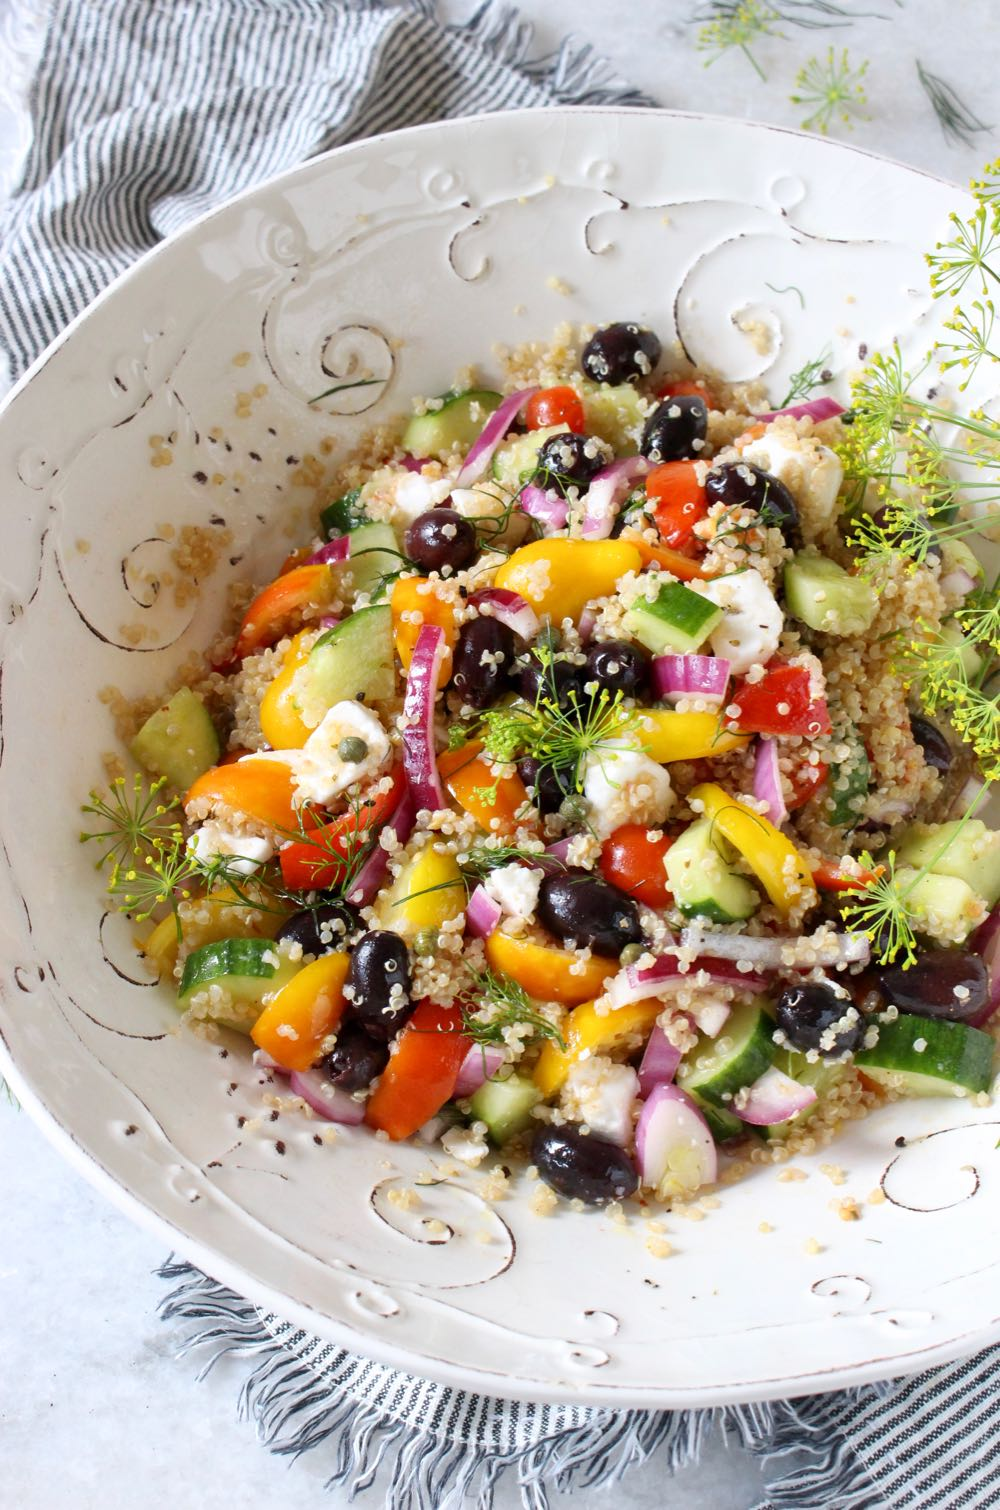 Classic Mediterranean quinoa salad with a zesty olive oil + red wine vinegar dressing.